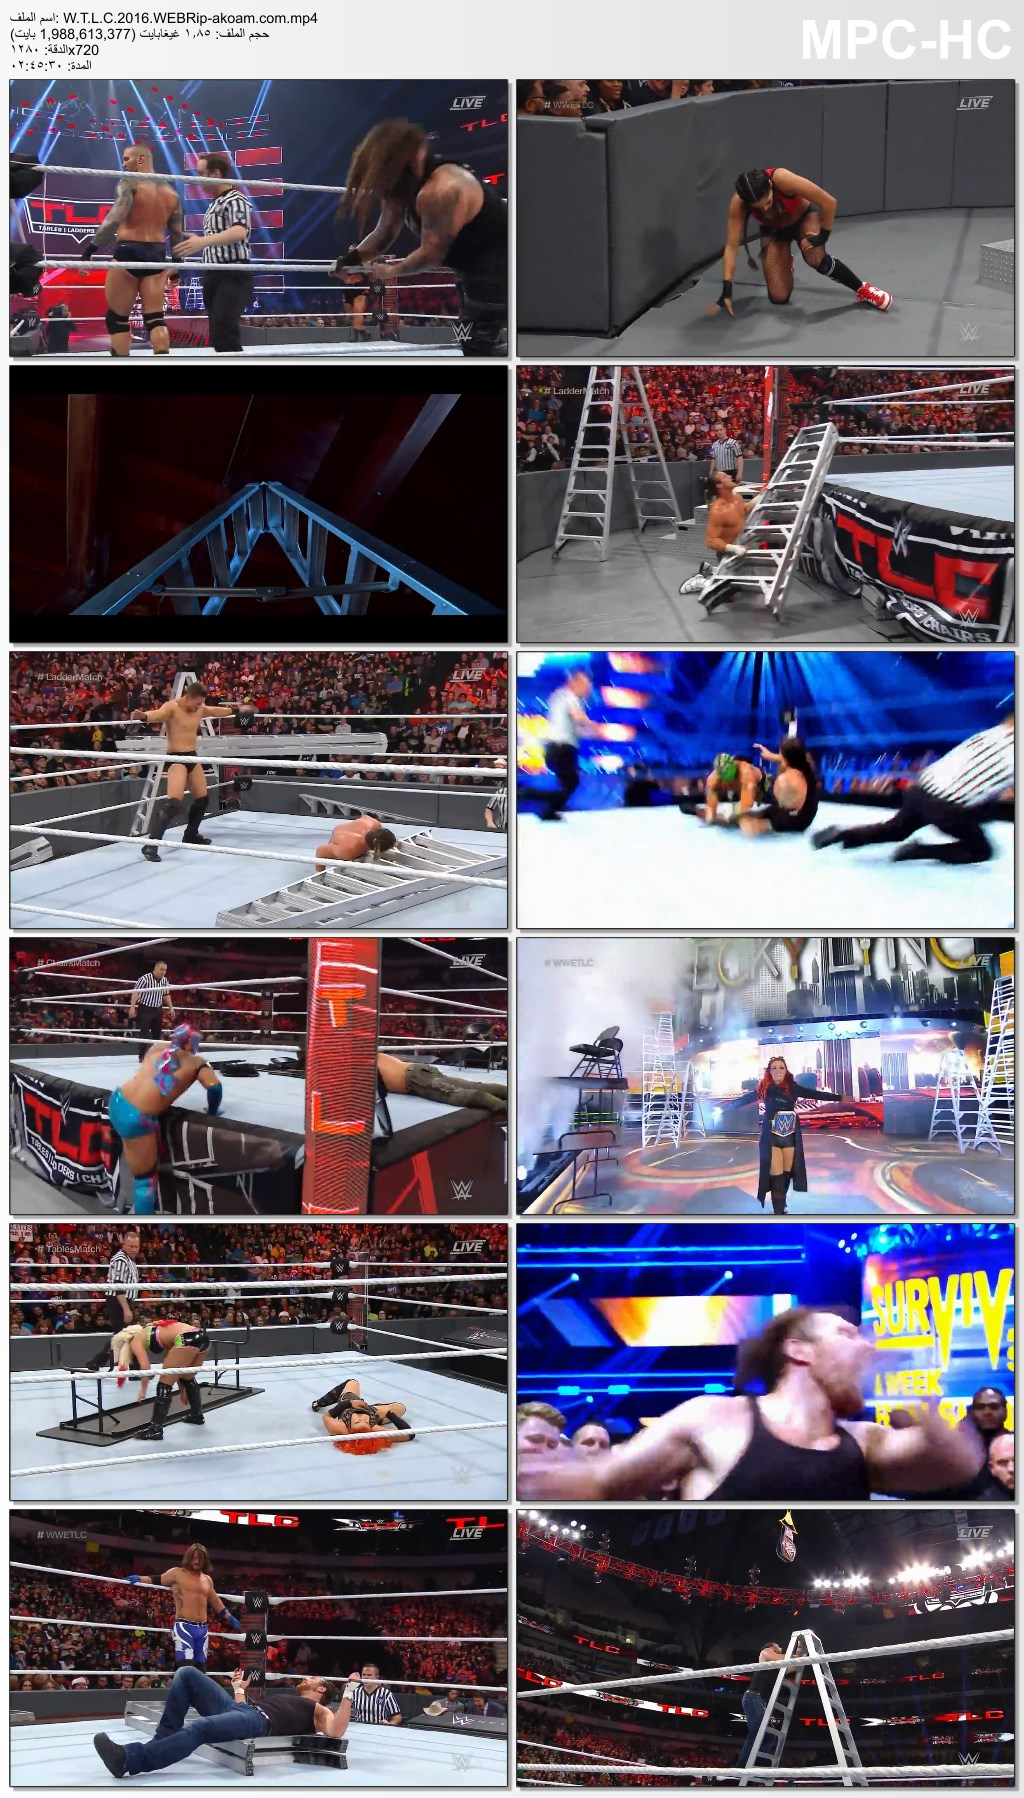 WWE TLC 2016 live,Dean Ambrose vs AJ Style,Tables,Ladders & Chairs 2016,WWE TLC 2016,WWE TLC 2016 كاملا,WWE TLC 2016 مترجم